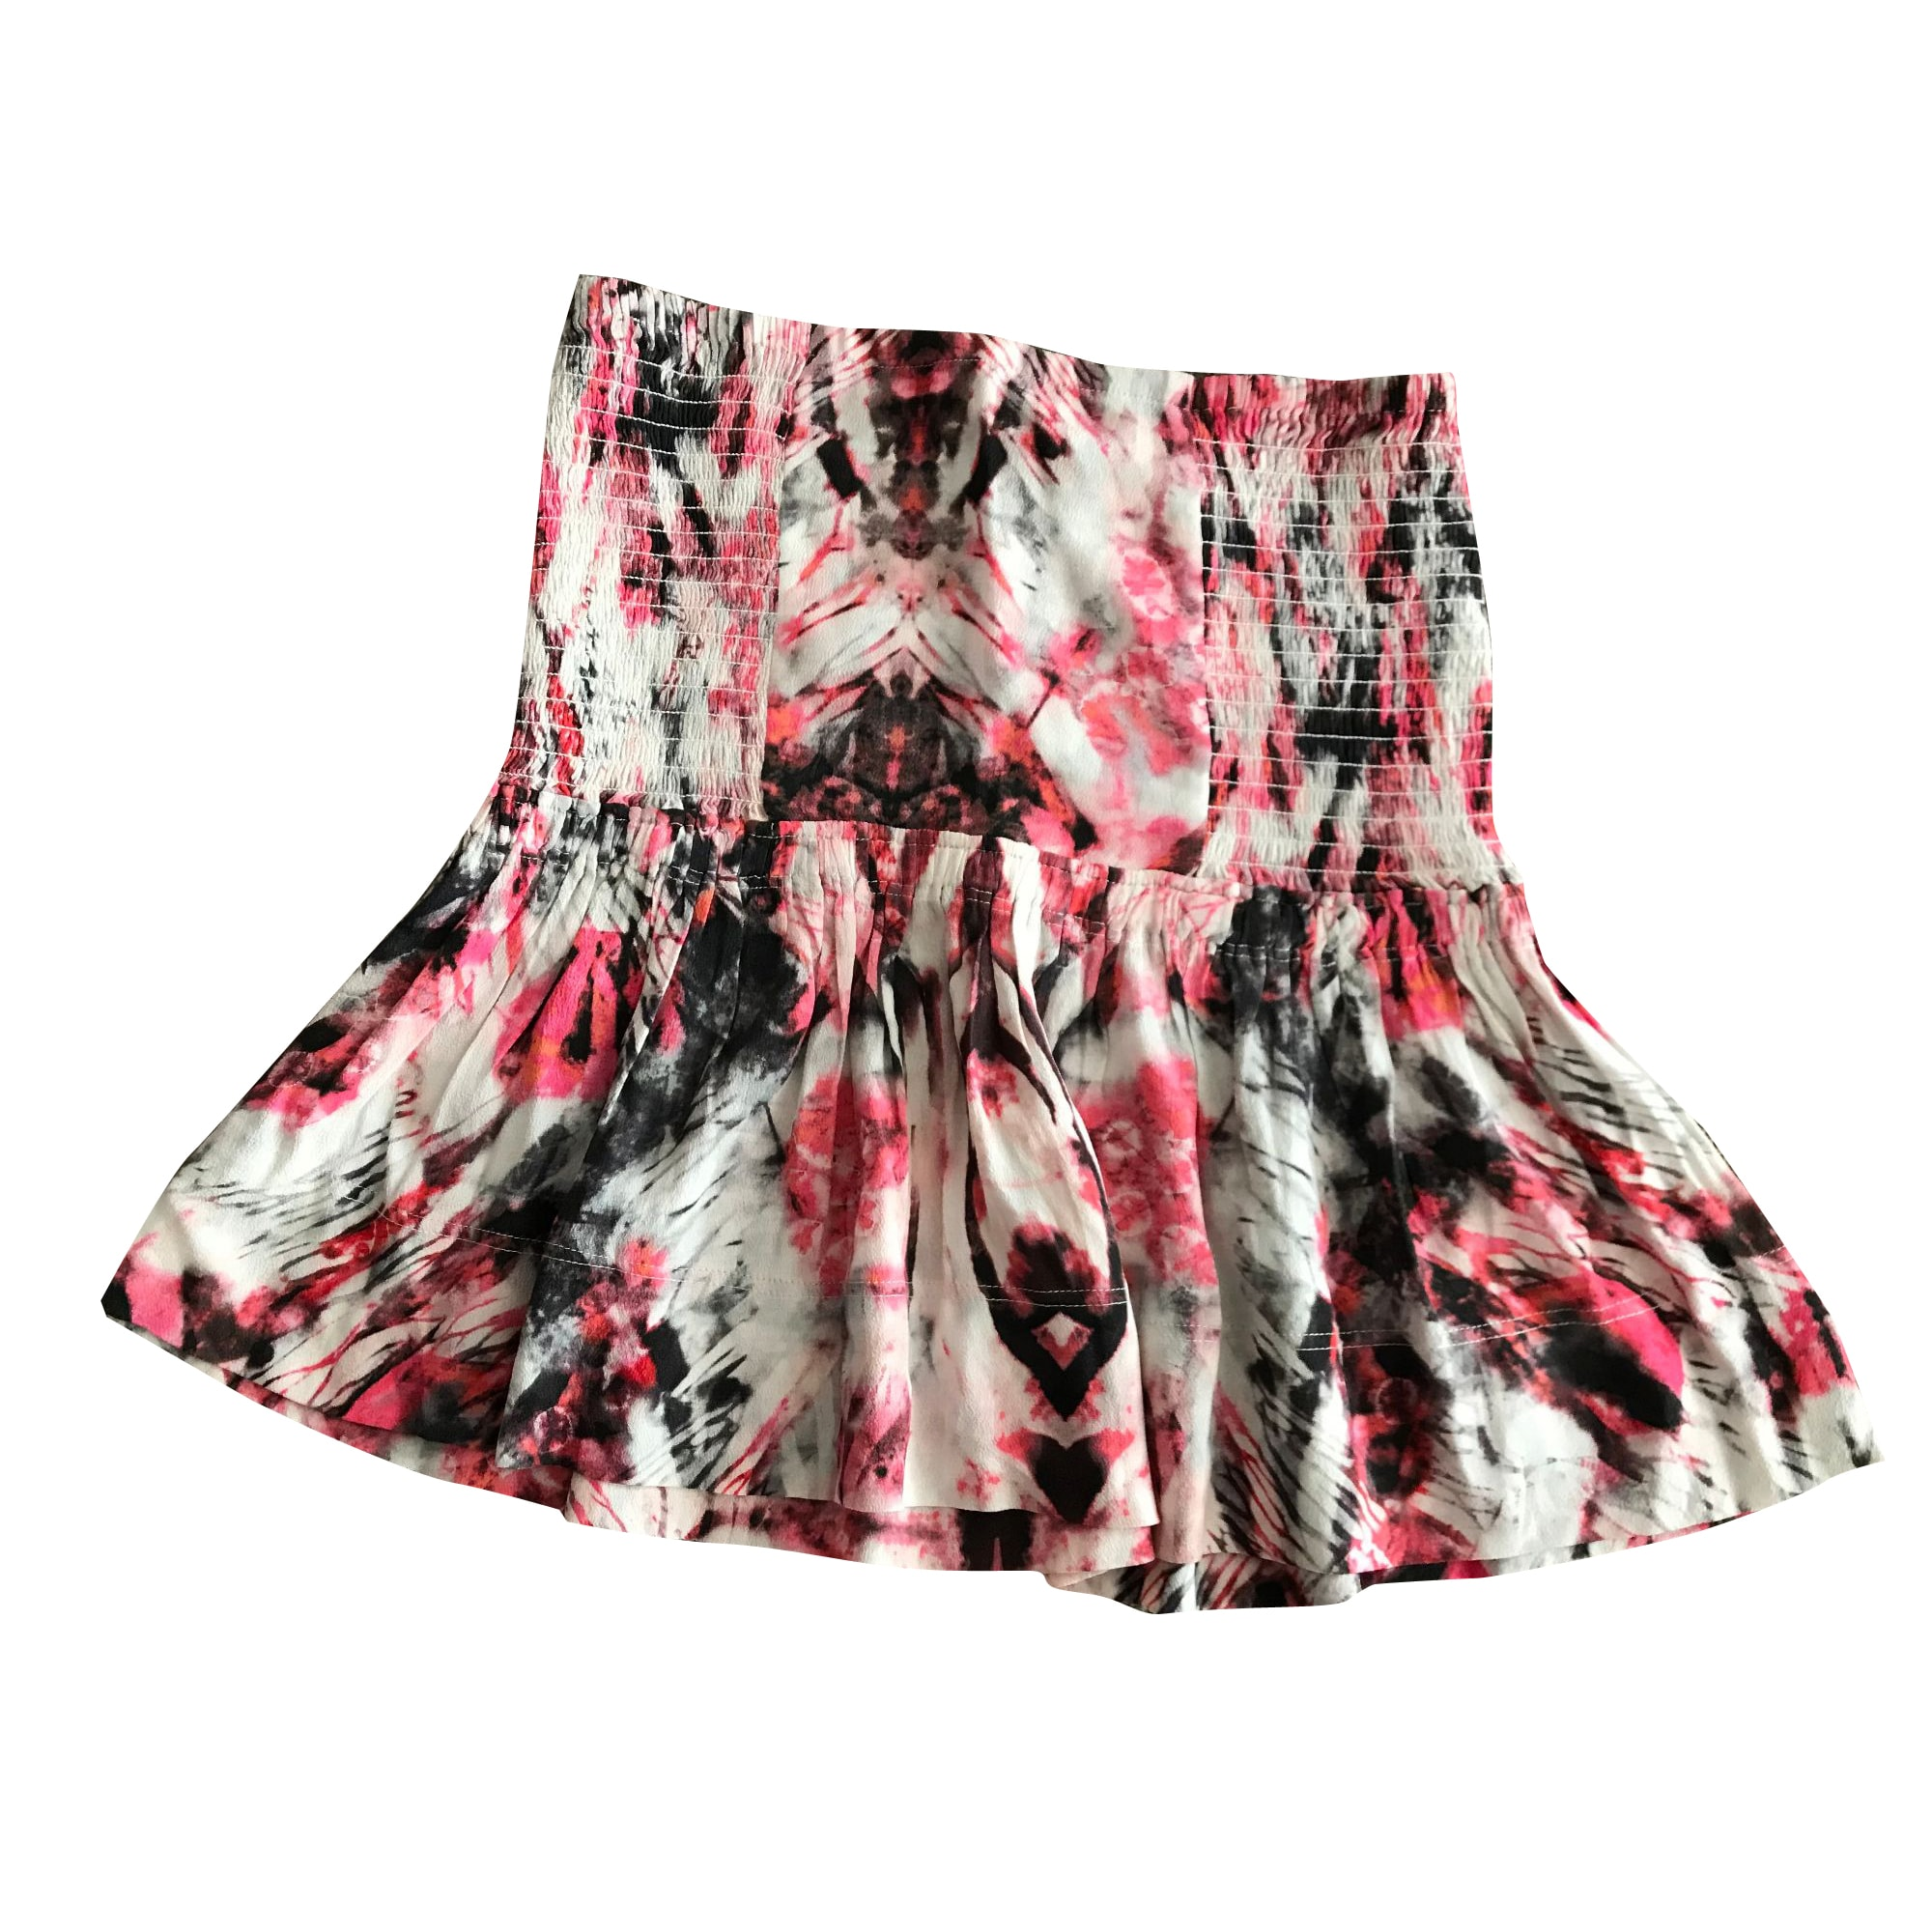 Mini Skirt IRO Pink, fuchsia, light pink